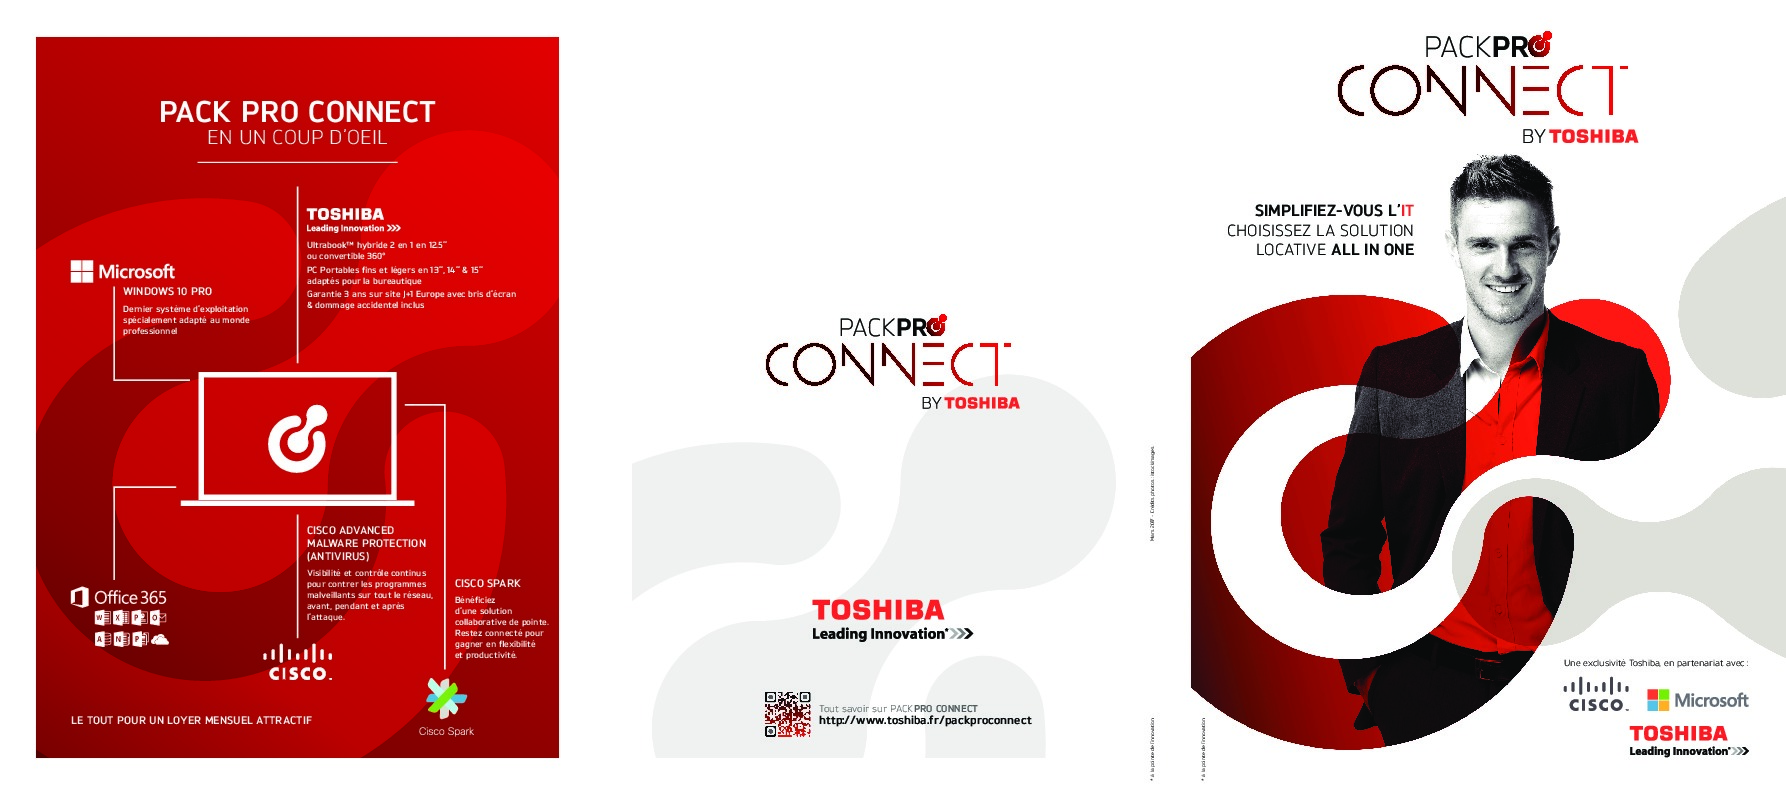 http://www.toshiba.fr/images/local/fr_FR/packproconnect/packproconnect.pdf